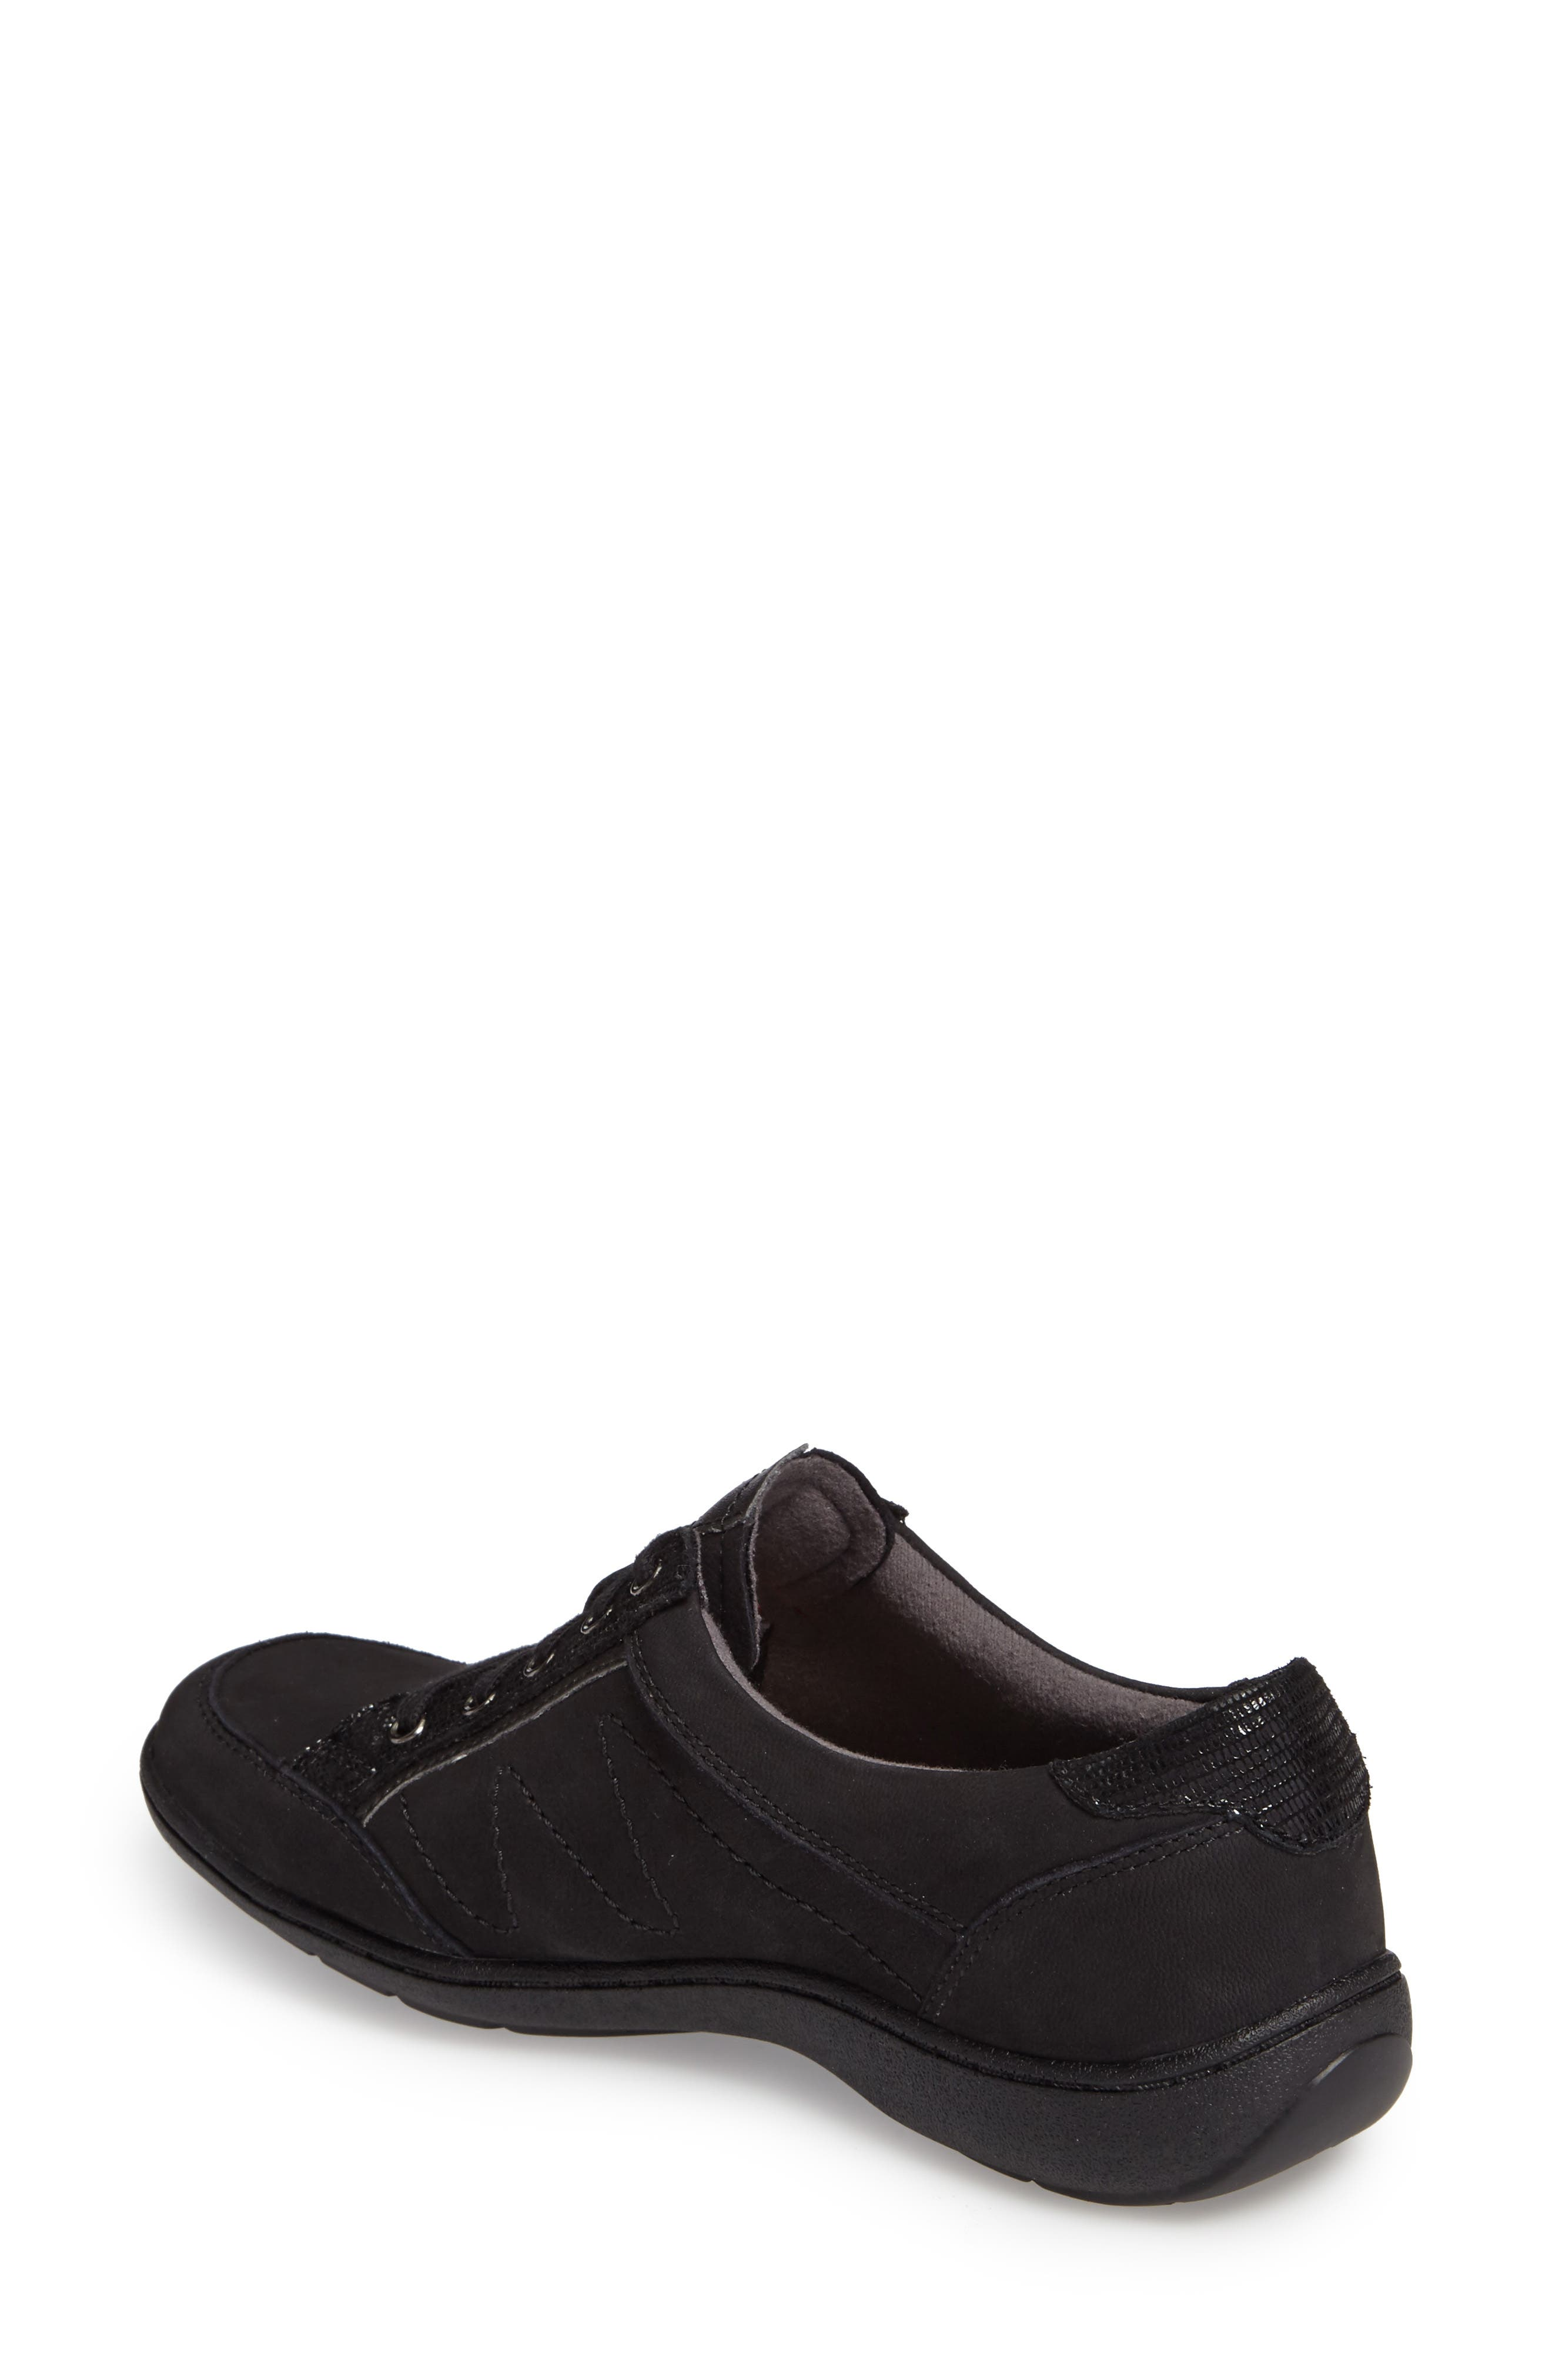 Bromly Sneaker,                             Alternate thumbnail 2, color,                             Black Fabric